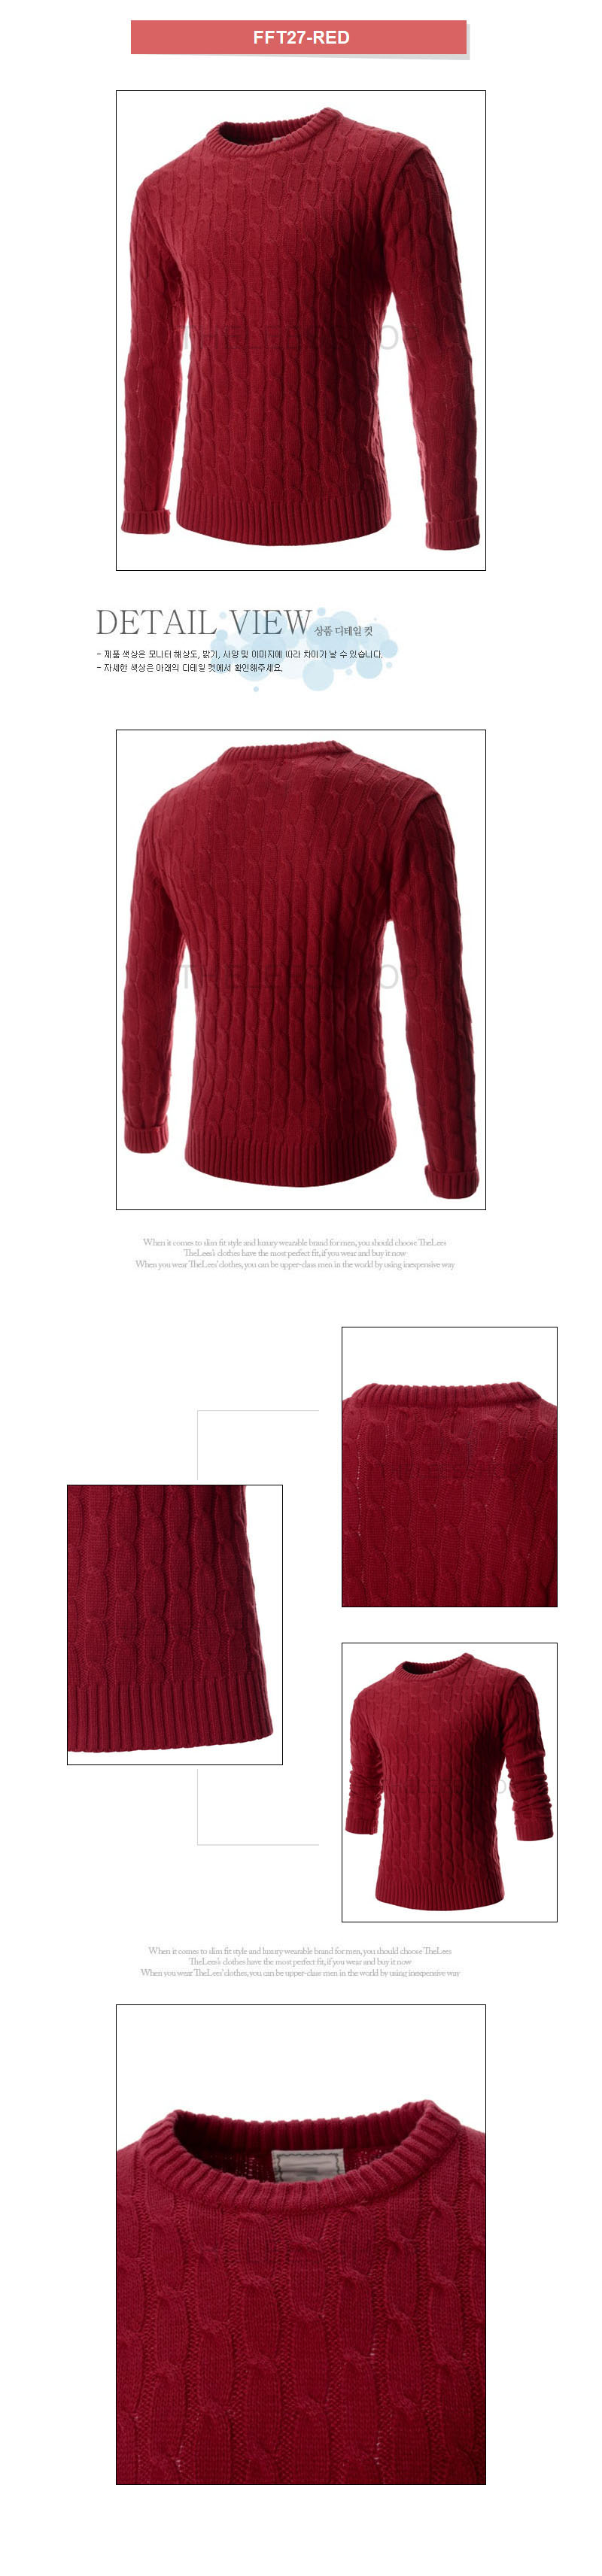 [ KOOLLOOK ] [KoolLook] Long-Sleeved Round Neck Twisted Knit Tshirt FFT27